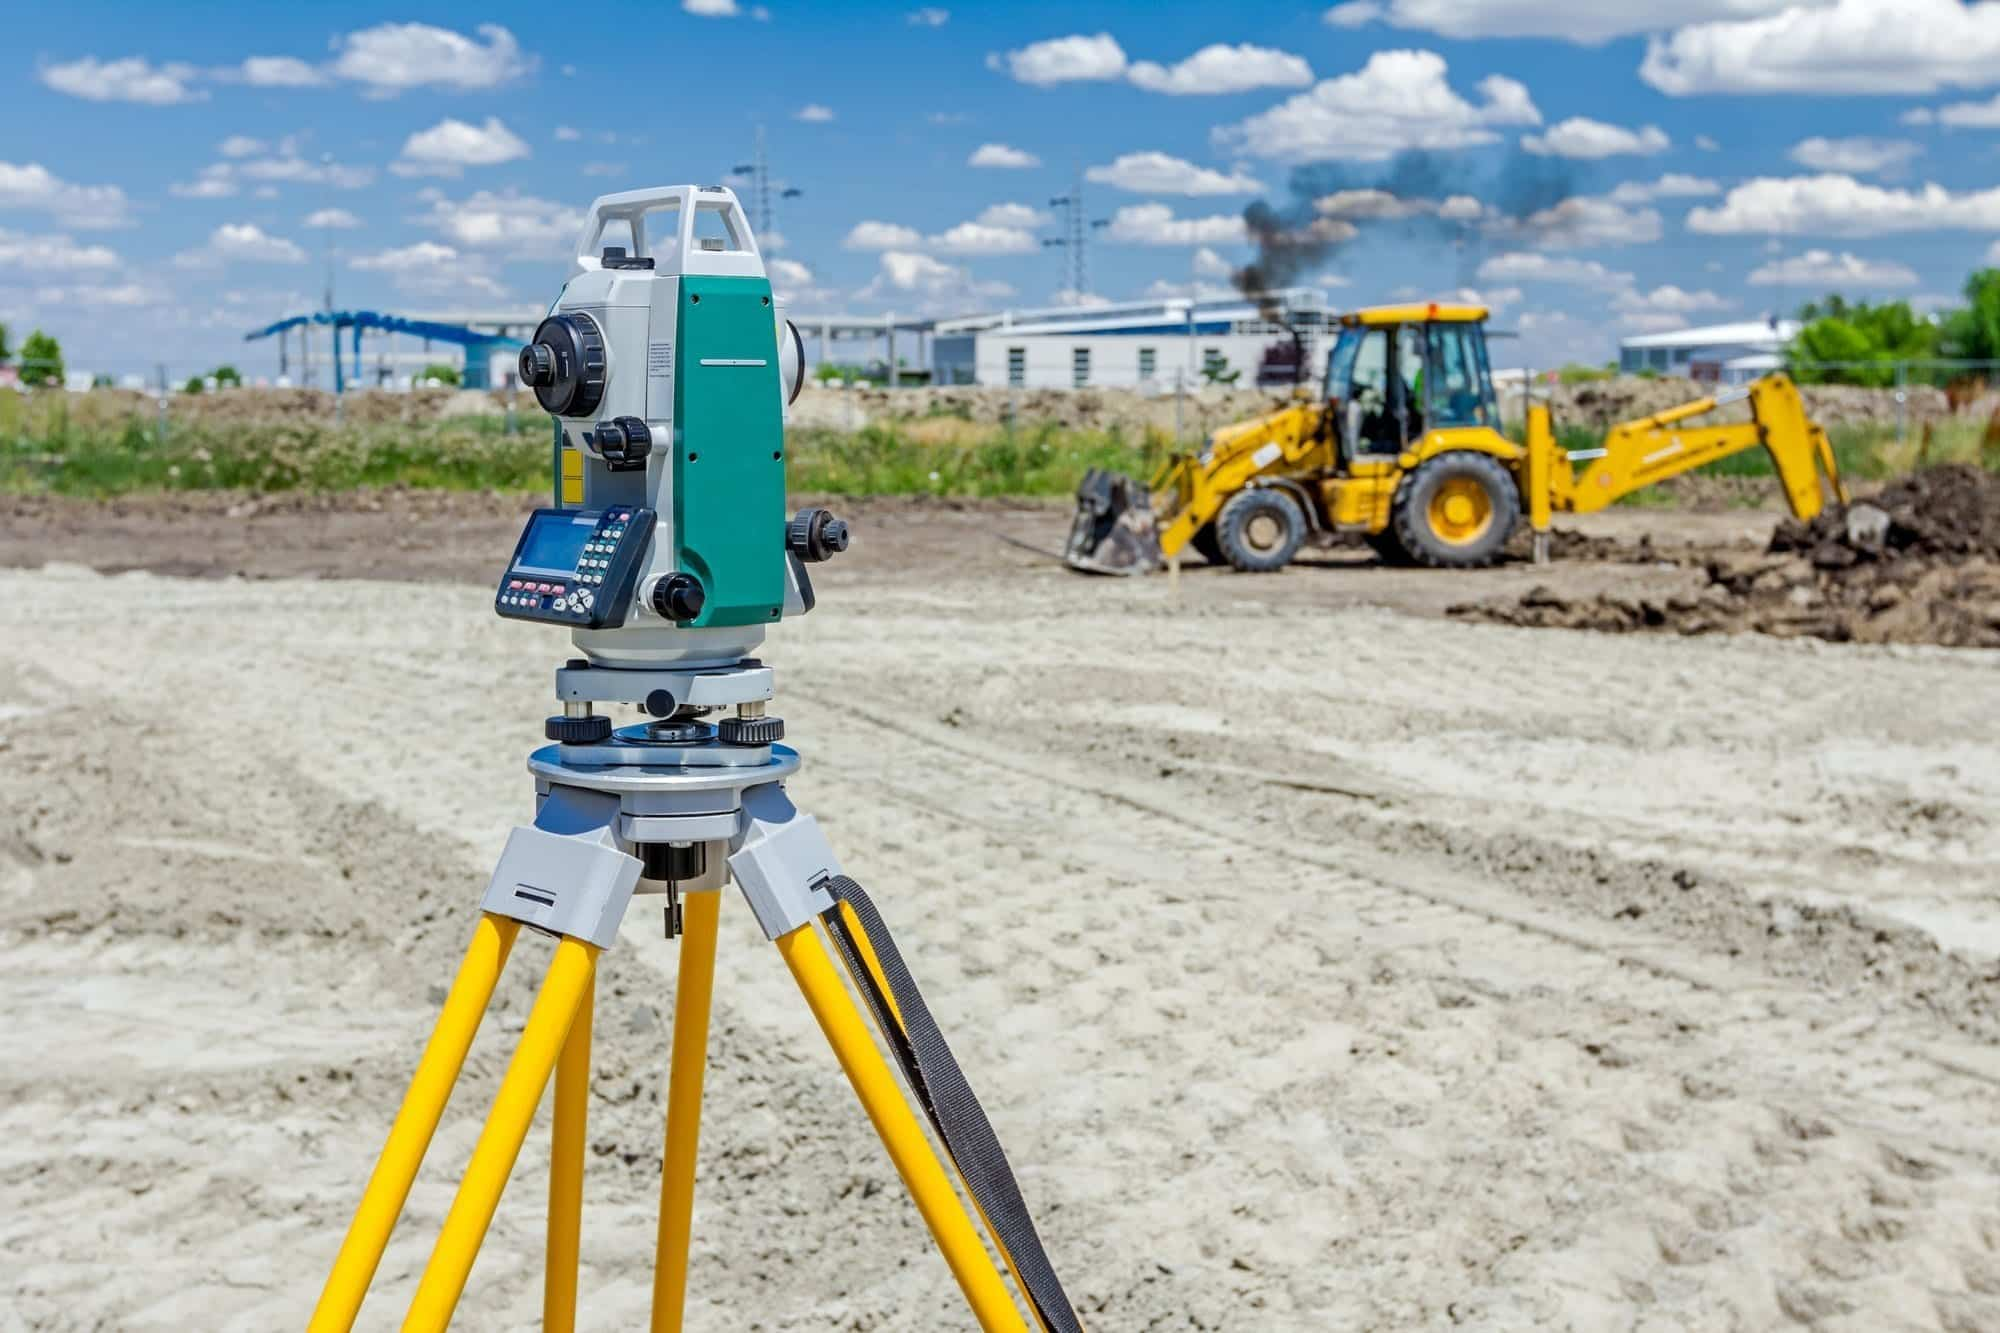 5 Highly Effective Tips to Help You Study and Pass Land Surveyor Exams